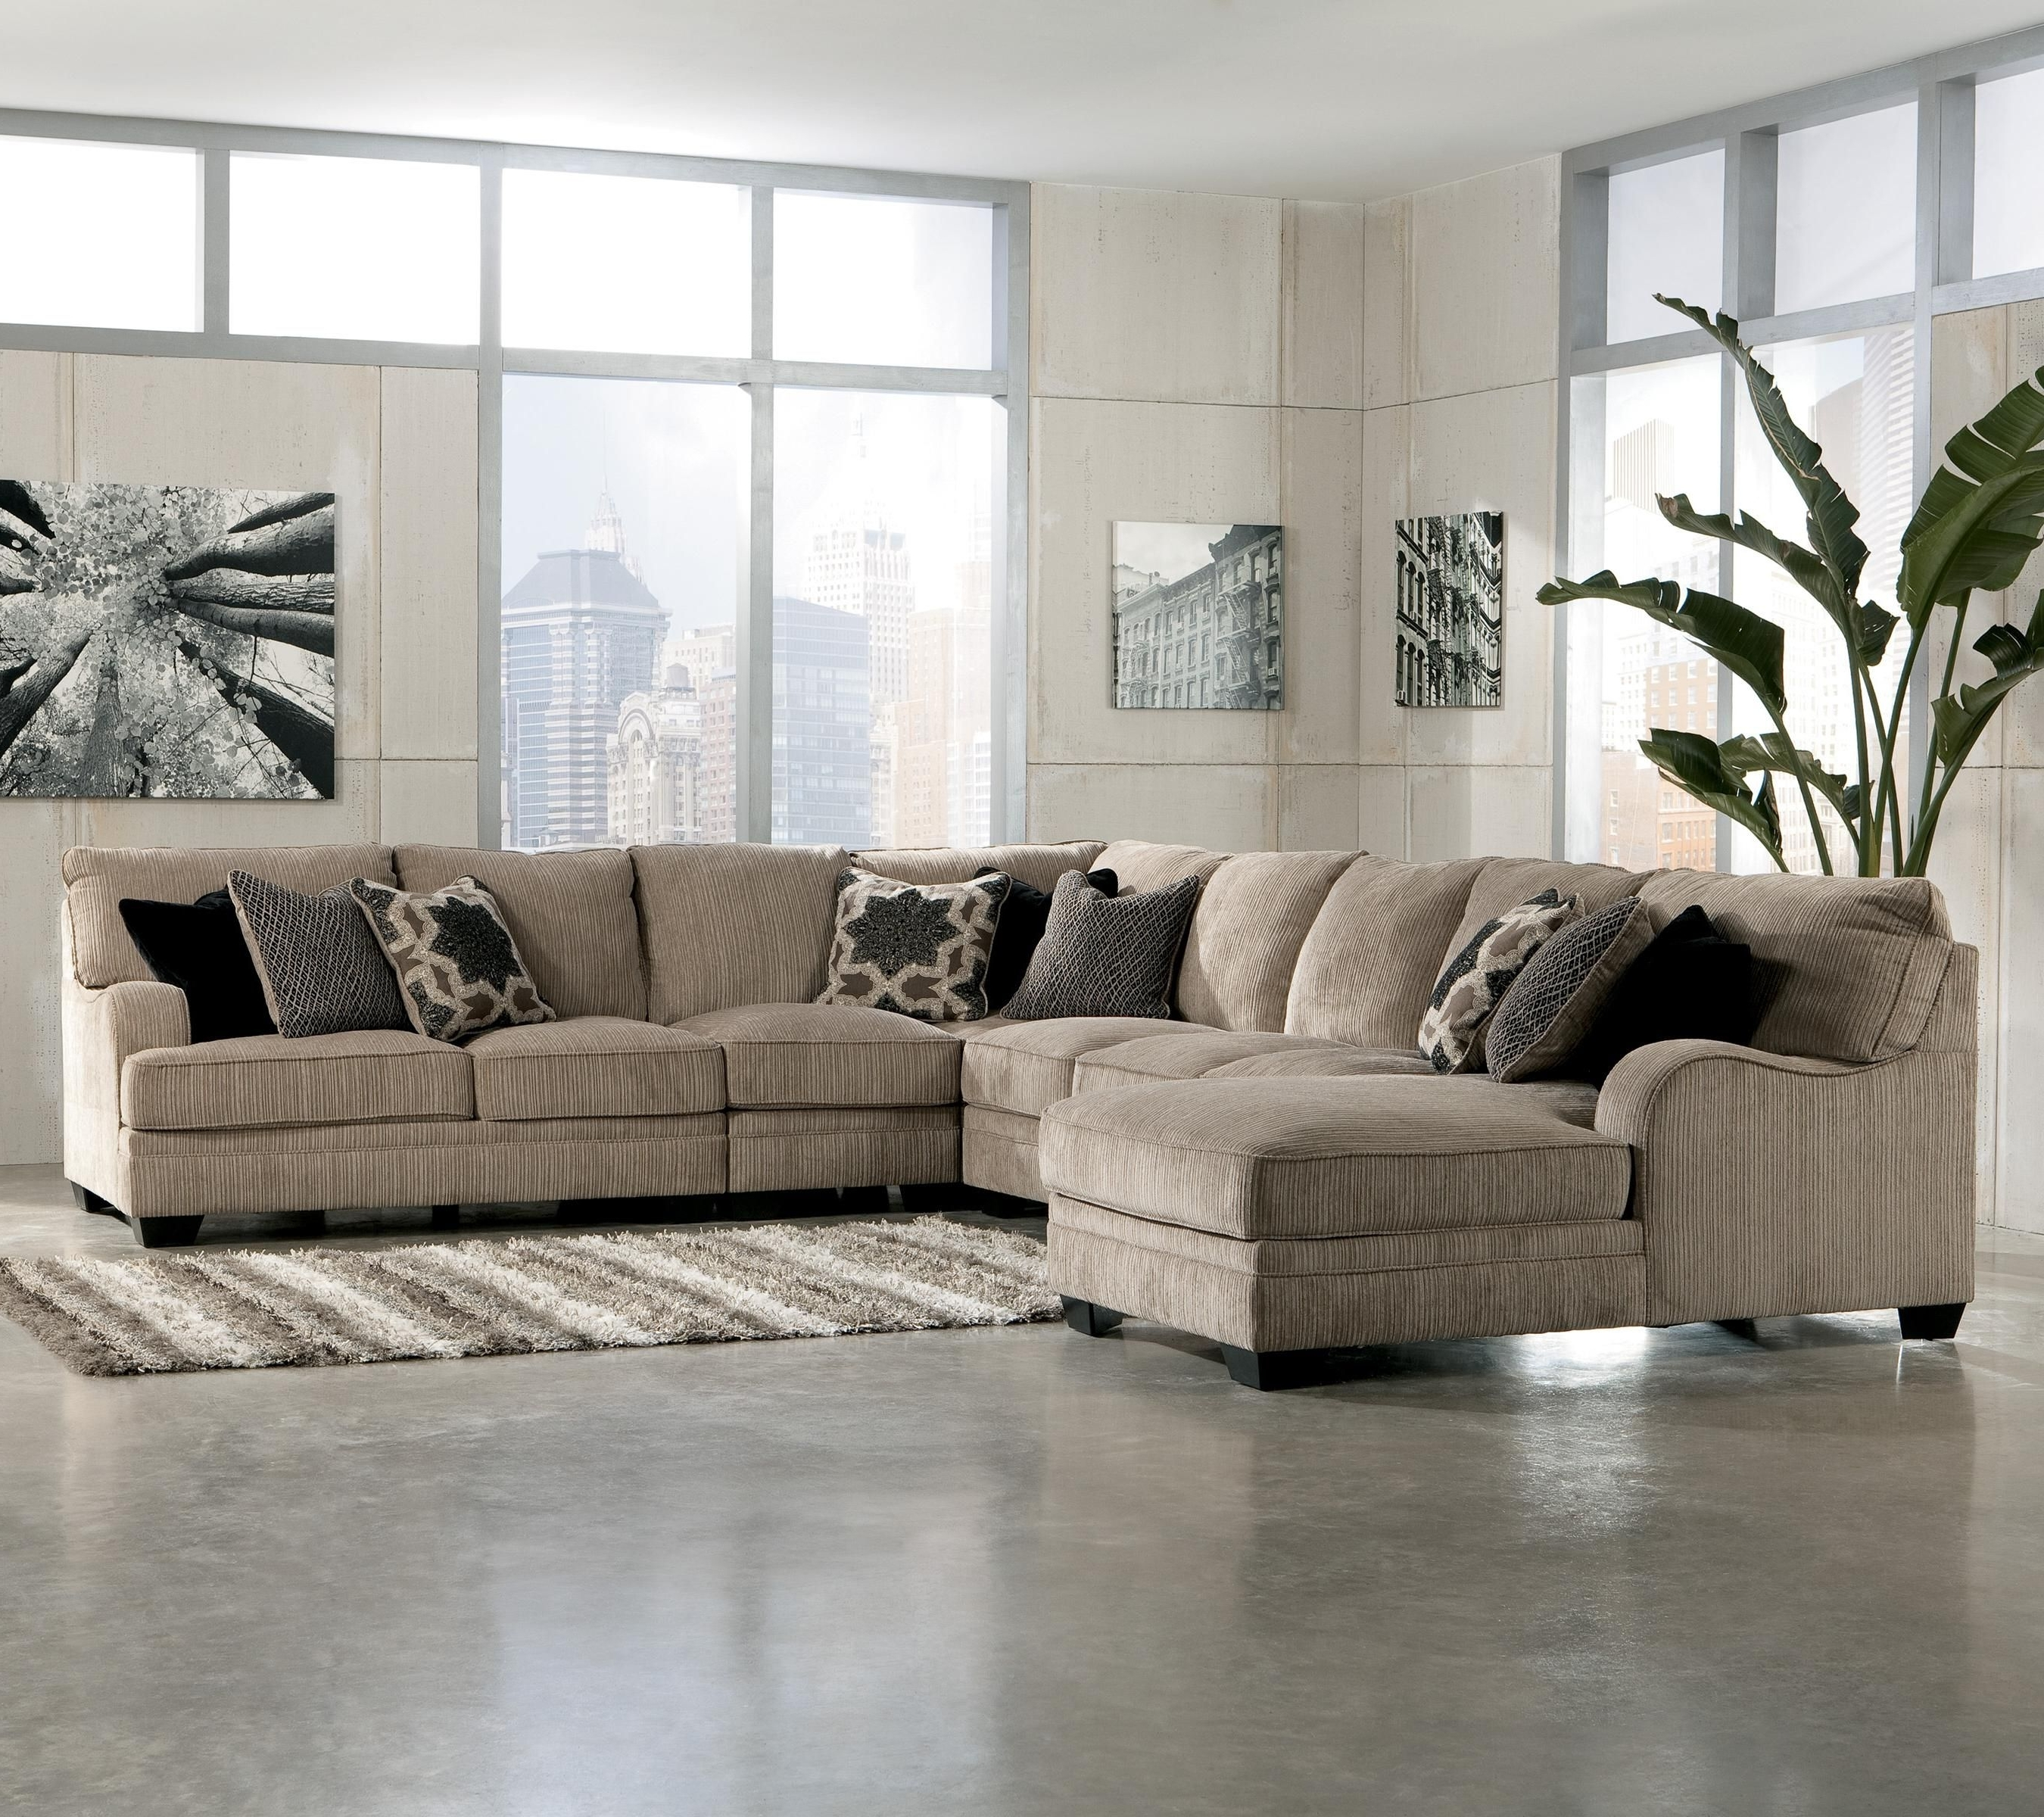 Jackson Tn Sectional Sofas Intended For 2019 Living Room Sectional: Katisha 4 Piece Sectionalashley (View 9 of 20)